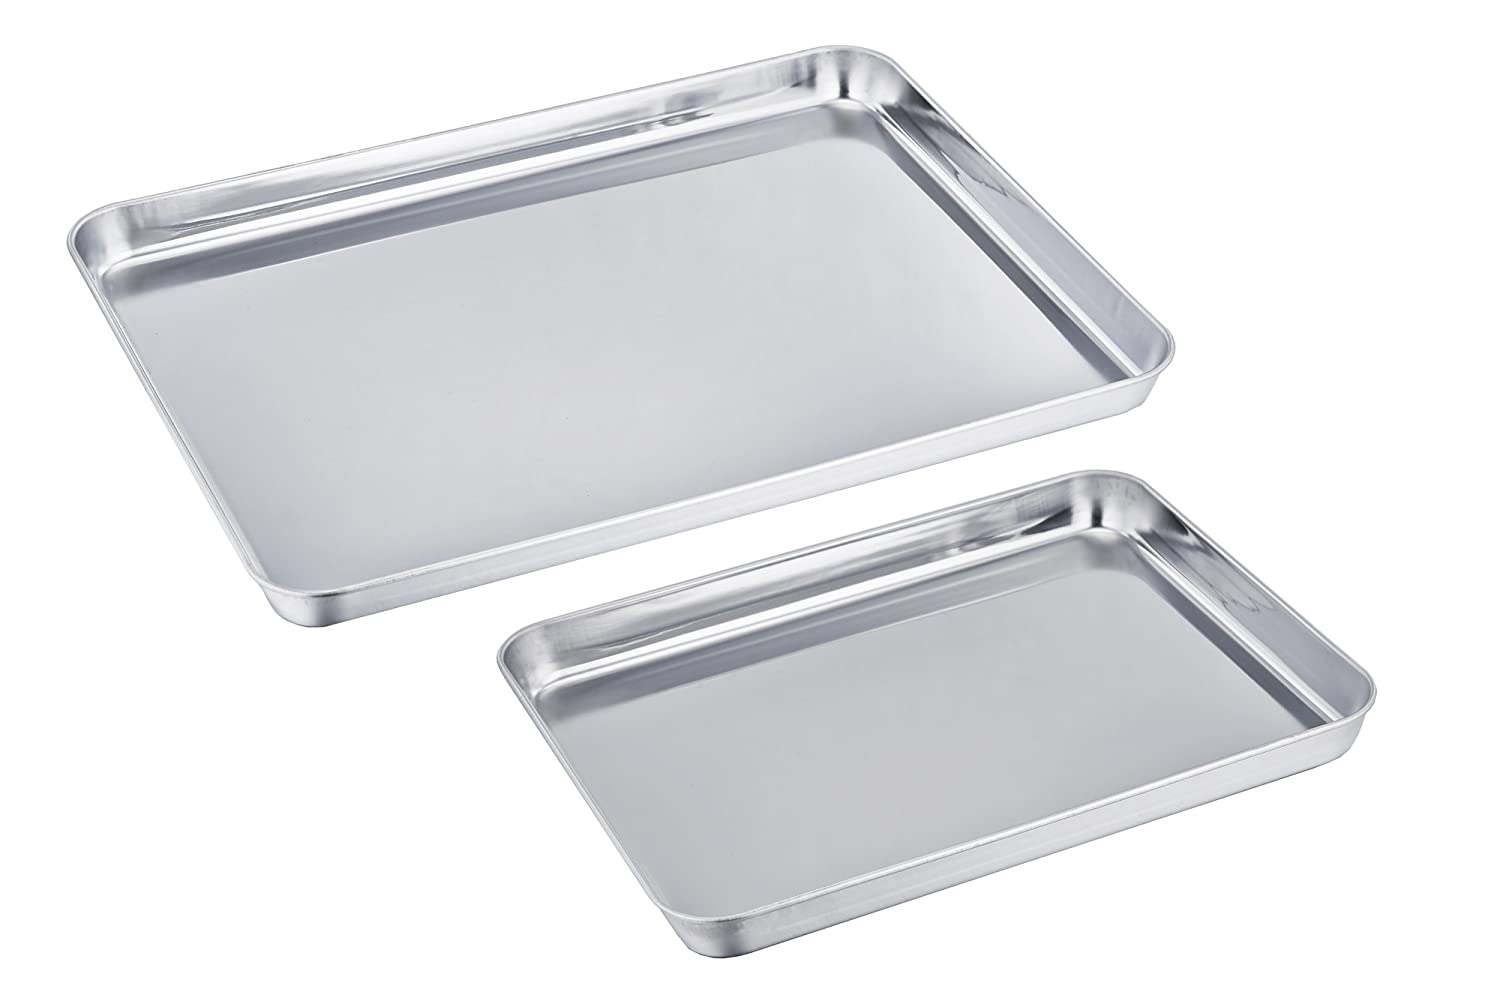 teamfar stainless steel baking sheet bakeware cookie pan. Black Bedroom Furniture Sets. Home Design Ideas